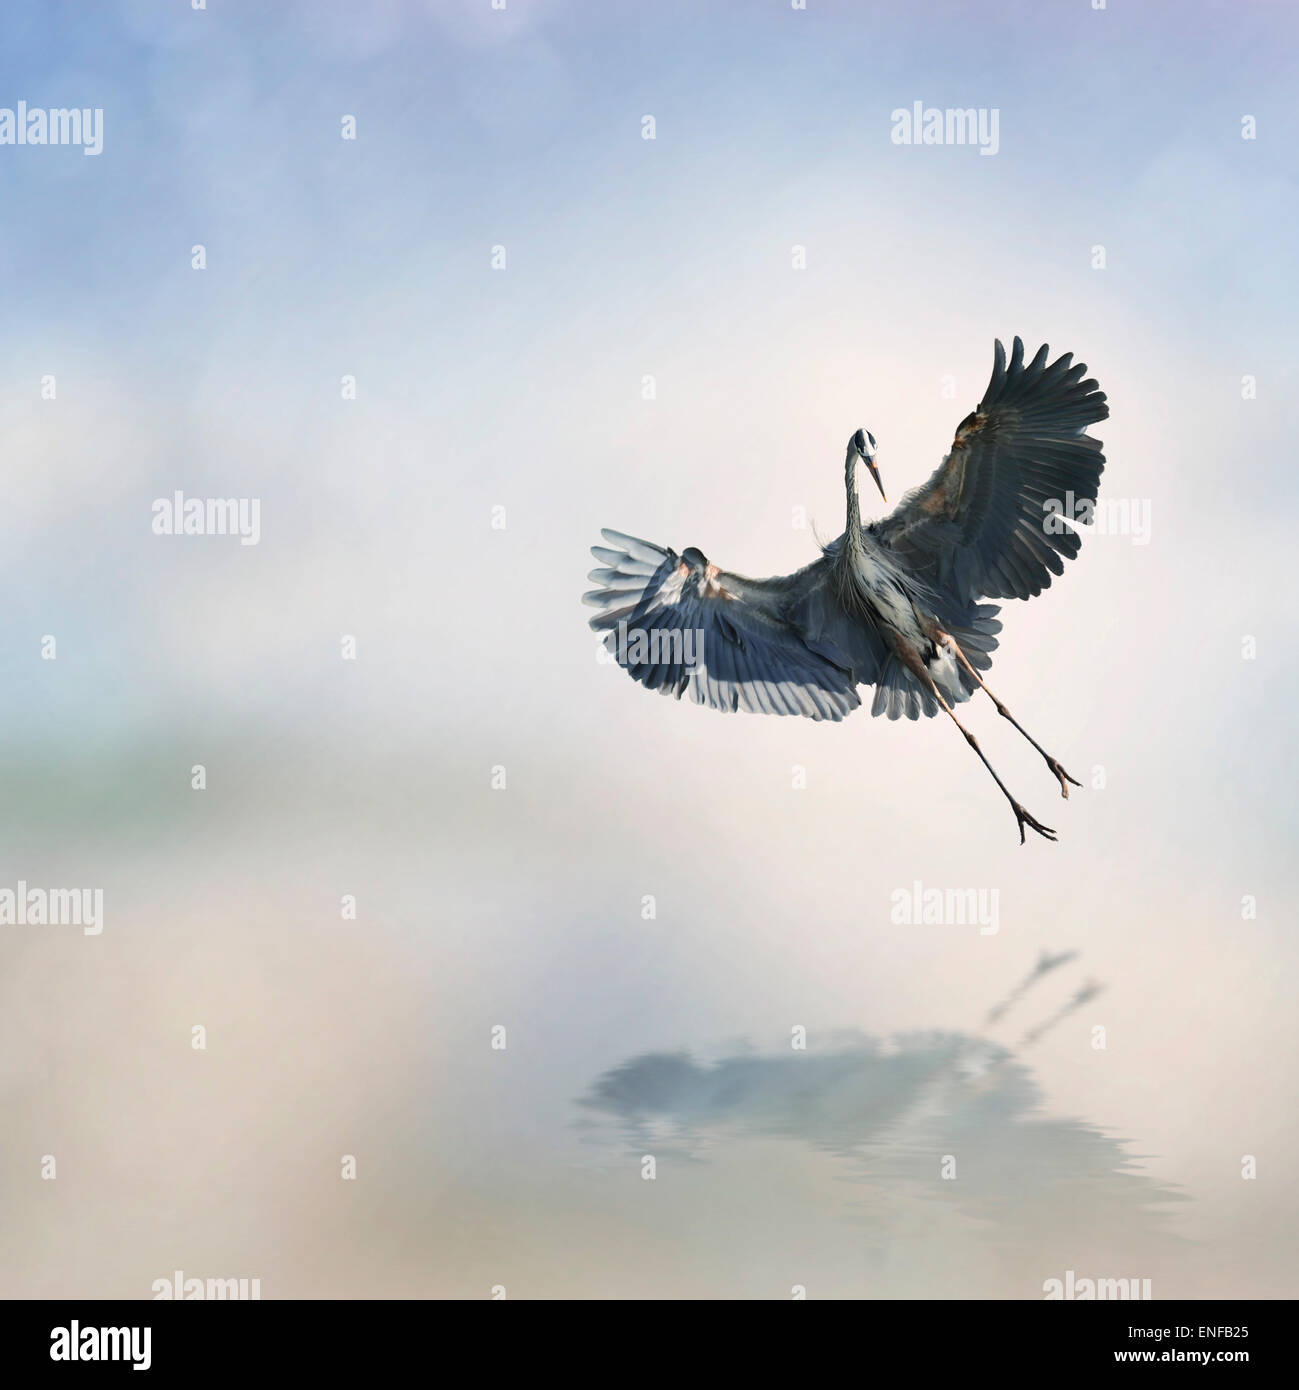 Great Blue Heron en vuelo Foto de stock